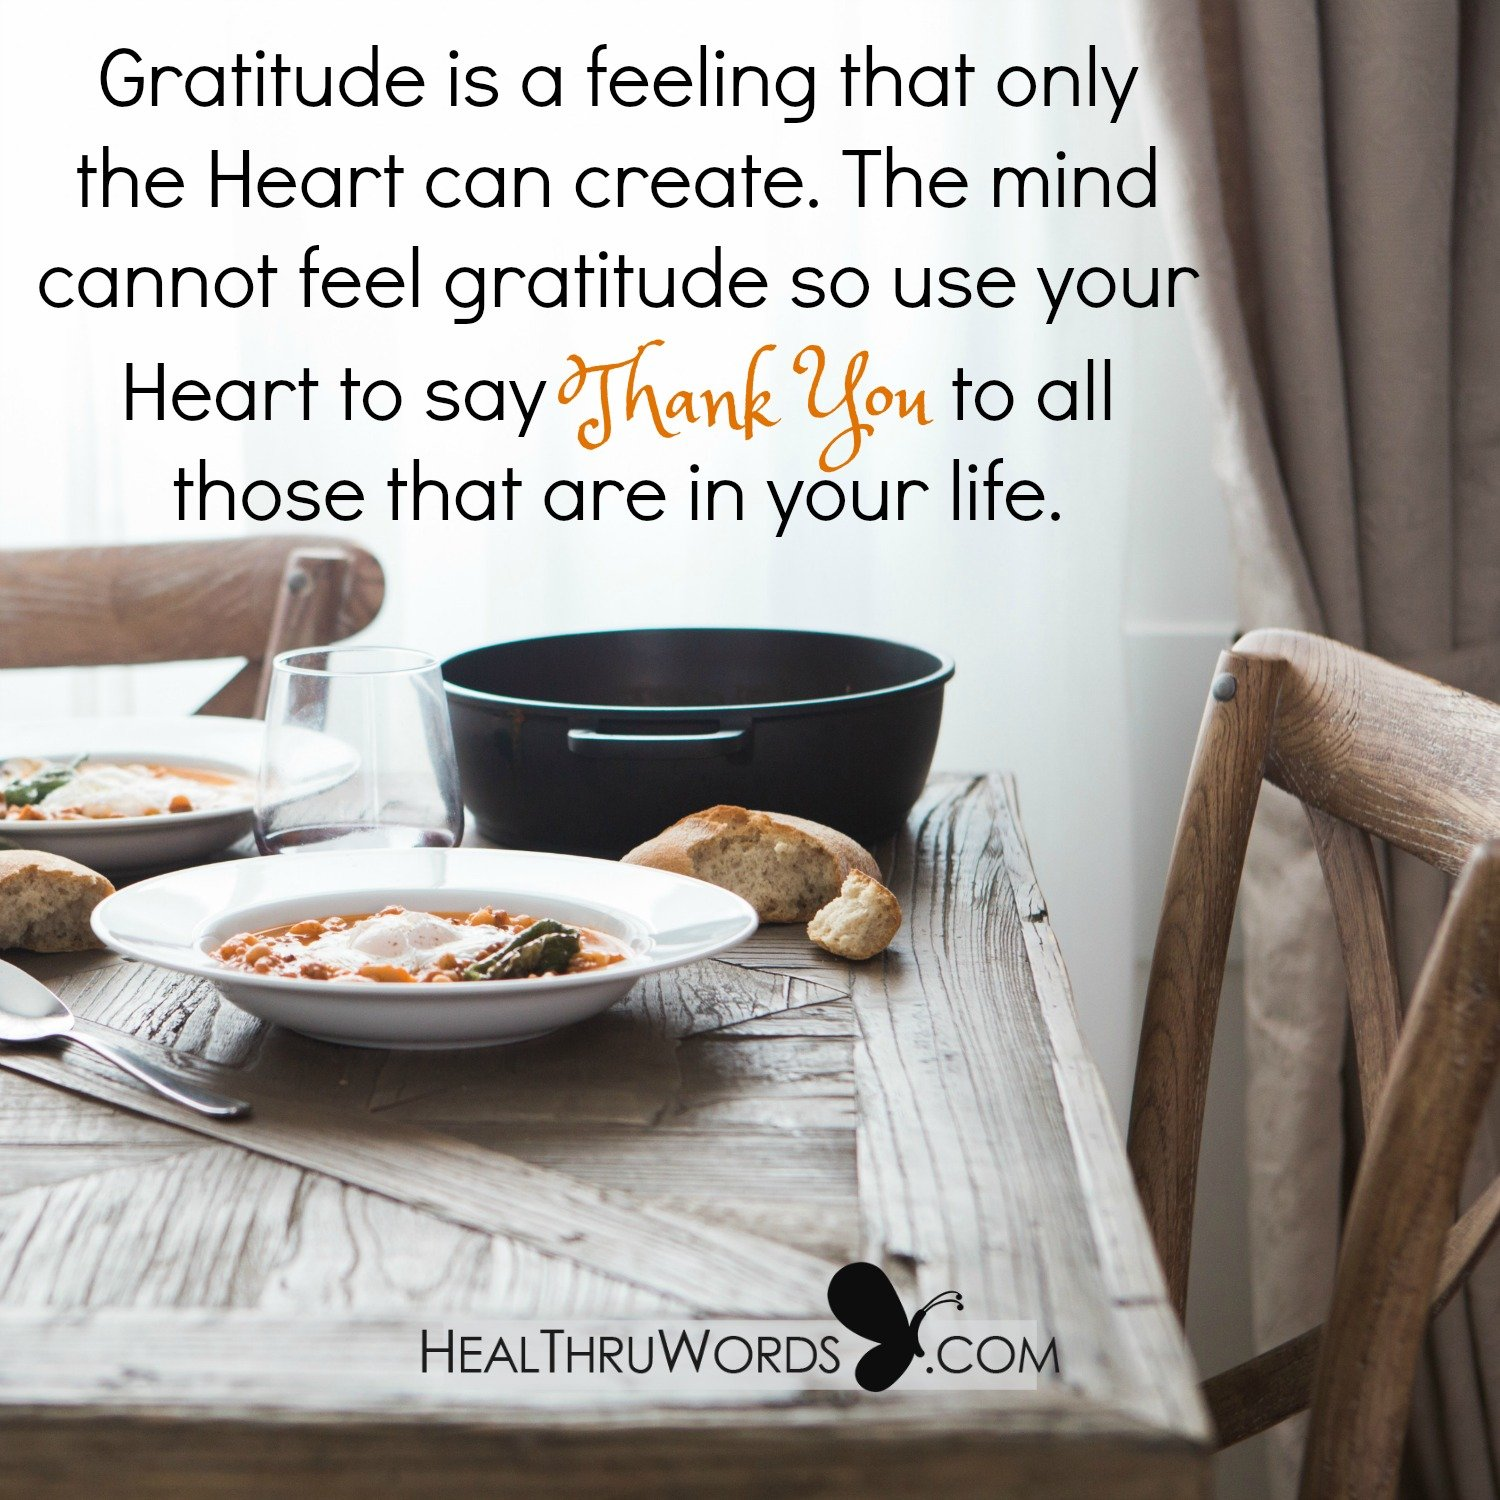 Inspirational Image: The Feeling of Gratitude